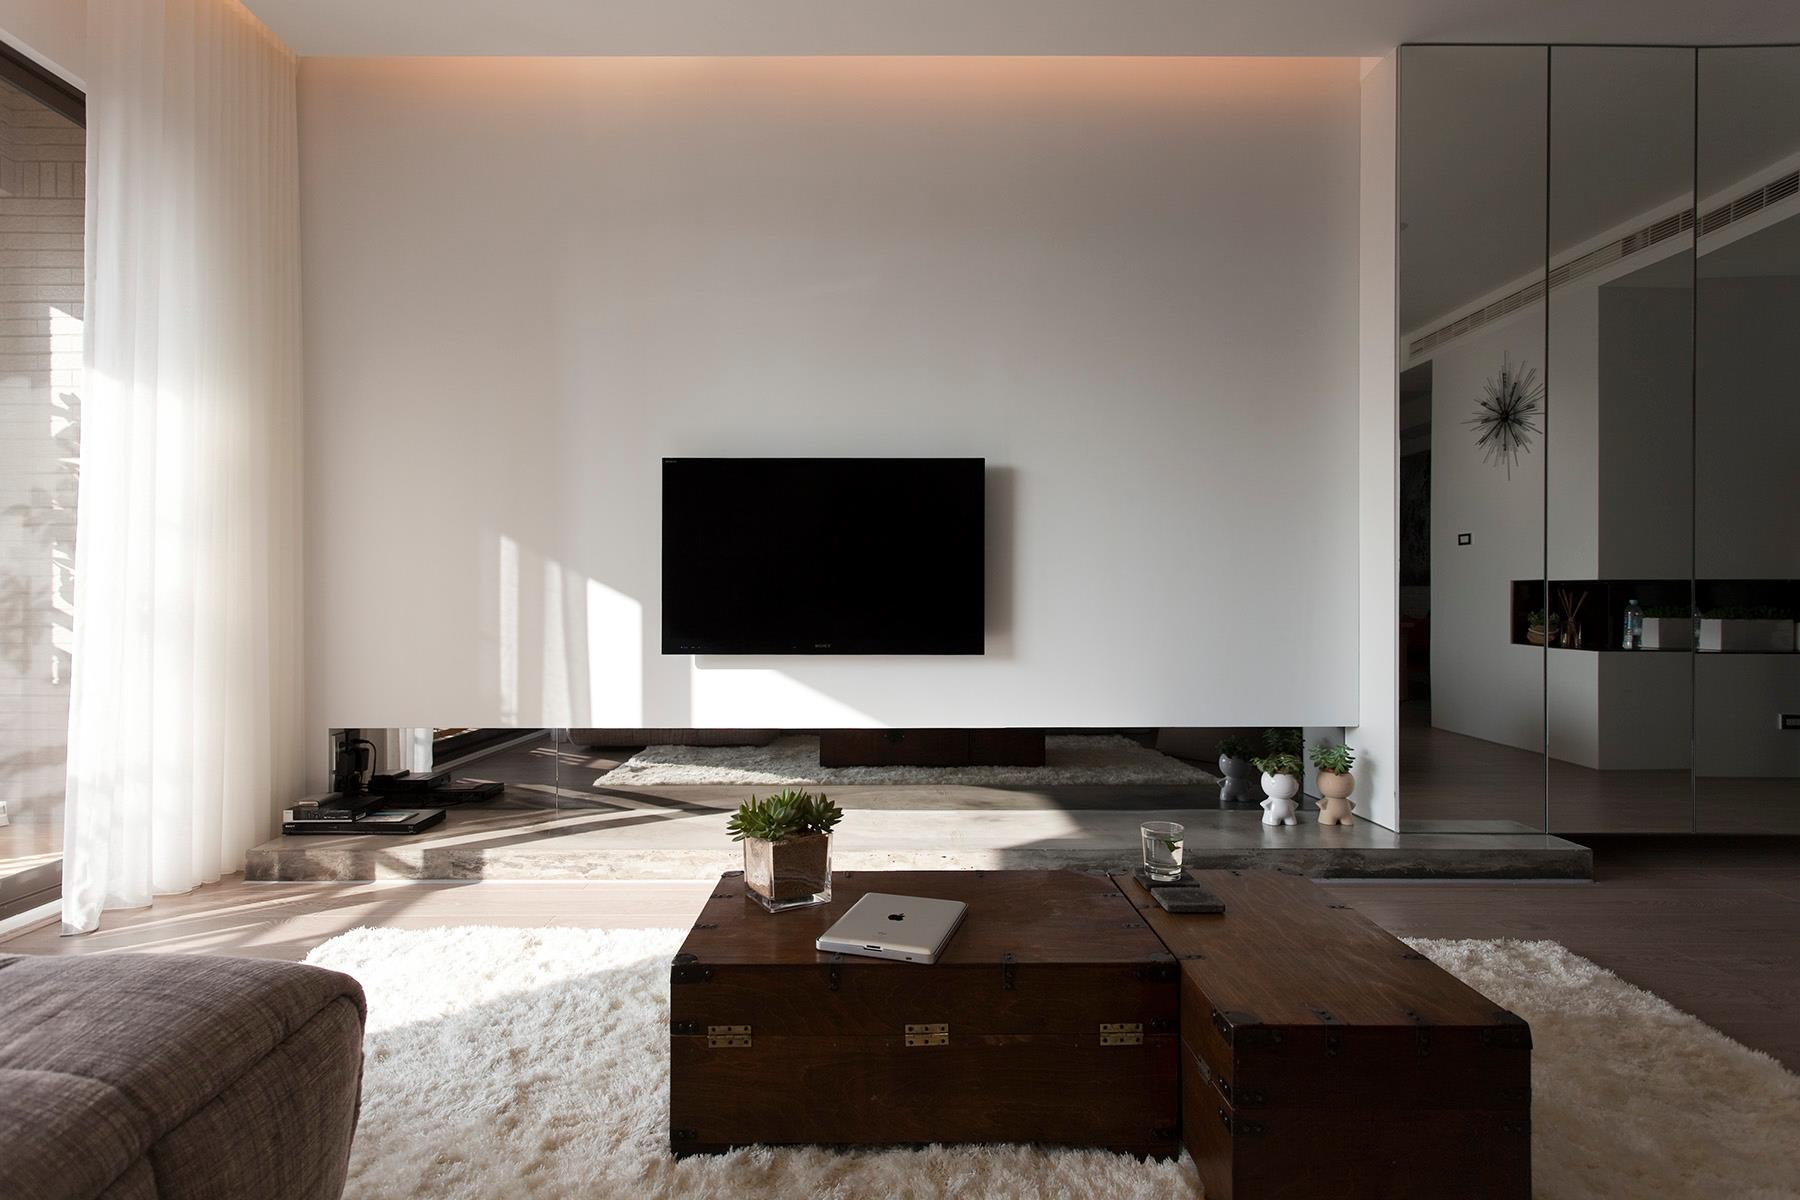 Modern living room jan 05 2013 19 52 46 picture gallery - Interior decoration of living room ...